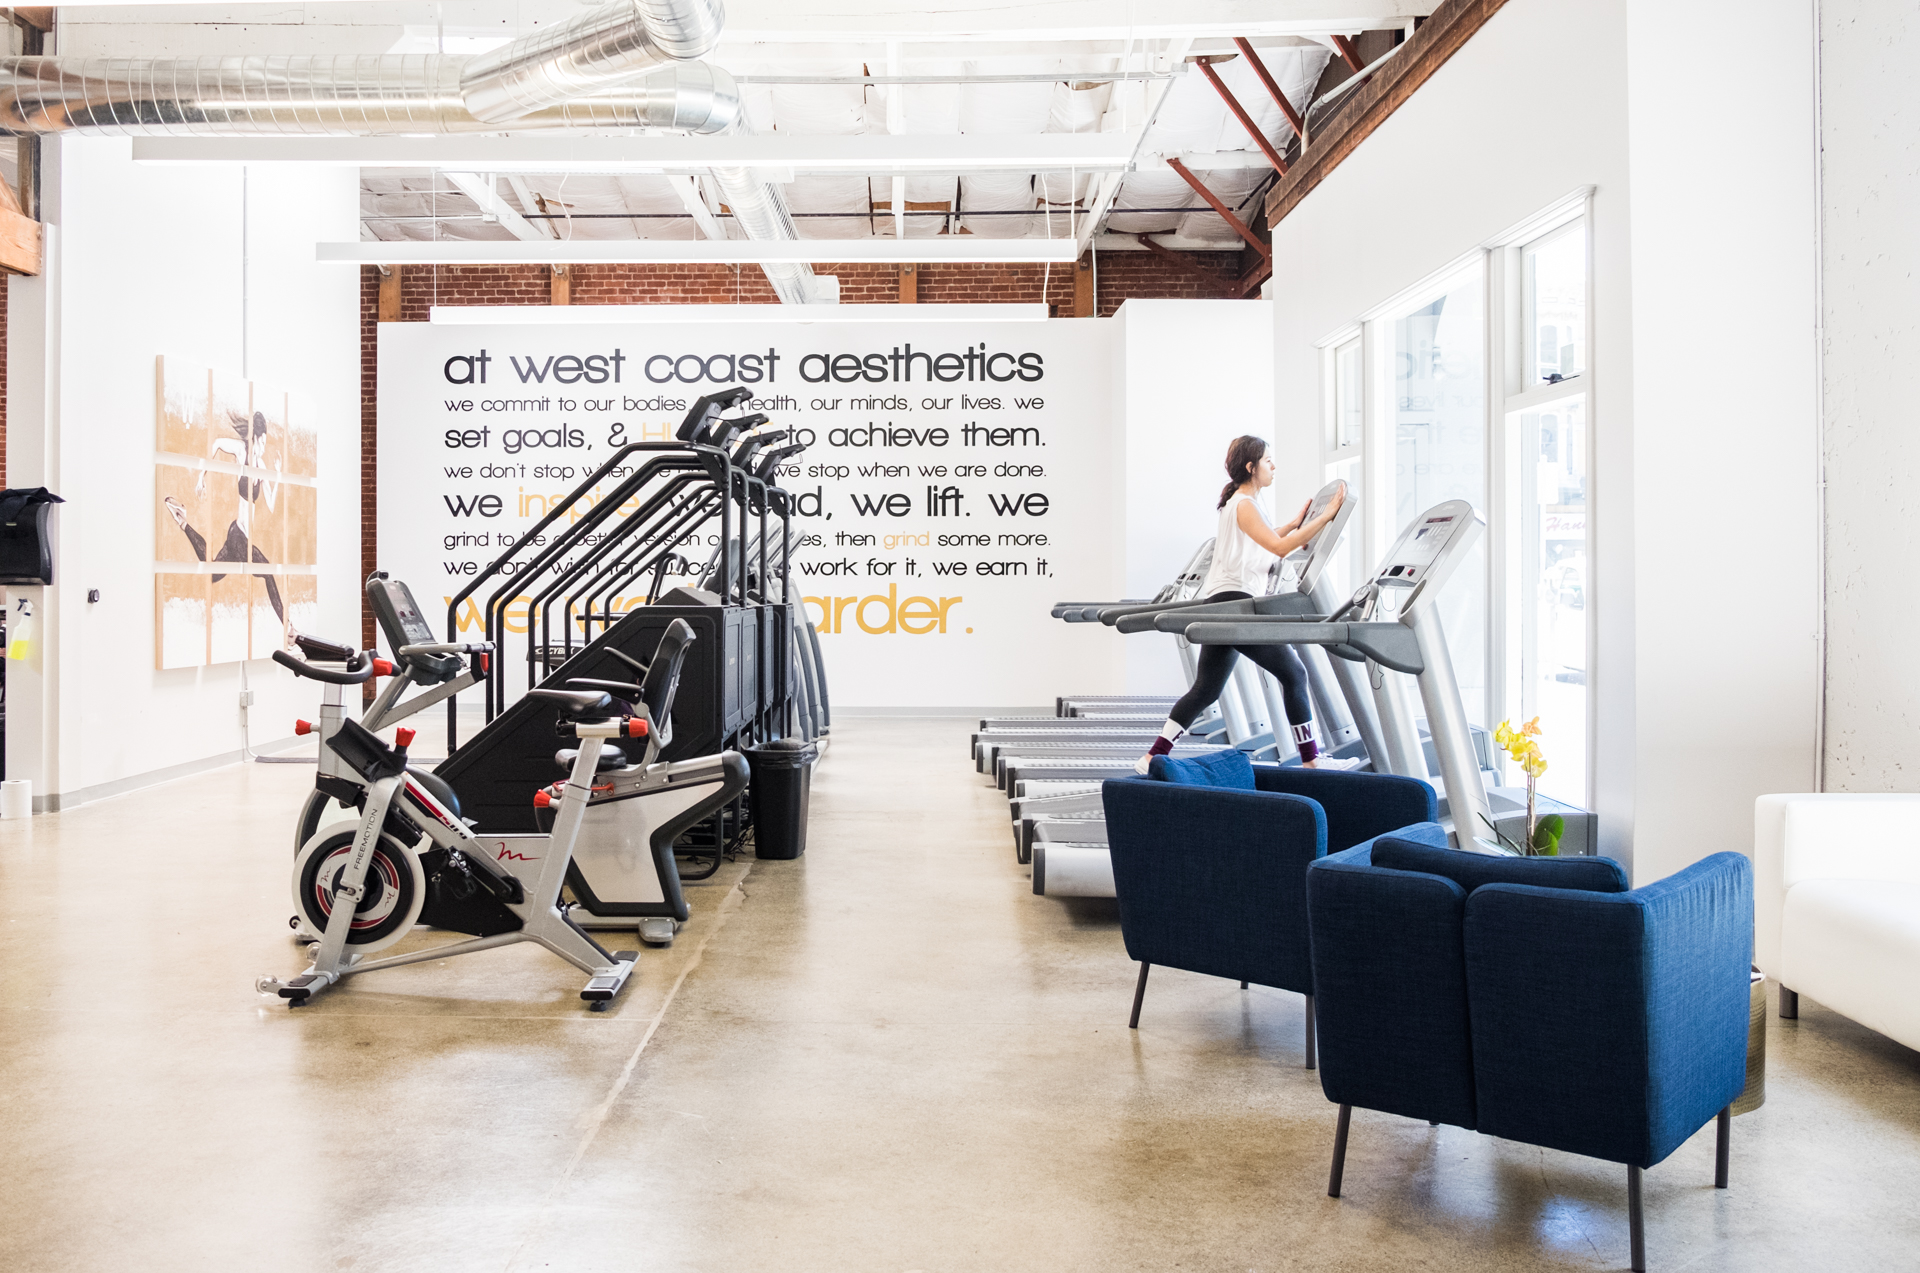 Welcome... - to West Coast Aesthetics, WESTCA, a boutique gym in downtown San Jose.  At WESTCA we bring our members a modern style in an approachable atmosphere; a place to work hard with friends,  stay motivated, and gain confidence & knowledge. We are community of all fitness levels, and offer an elite personal training team for those looking to take their fitness to the next level.